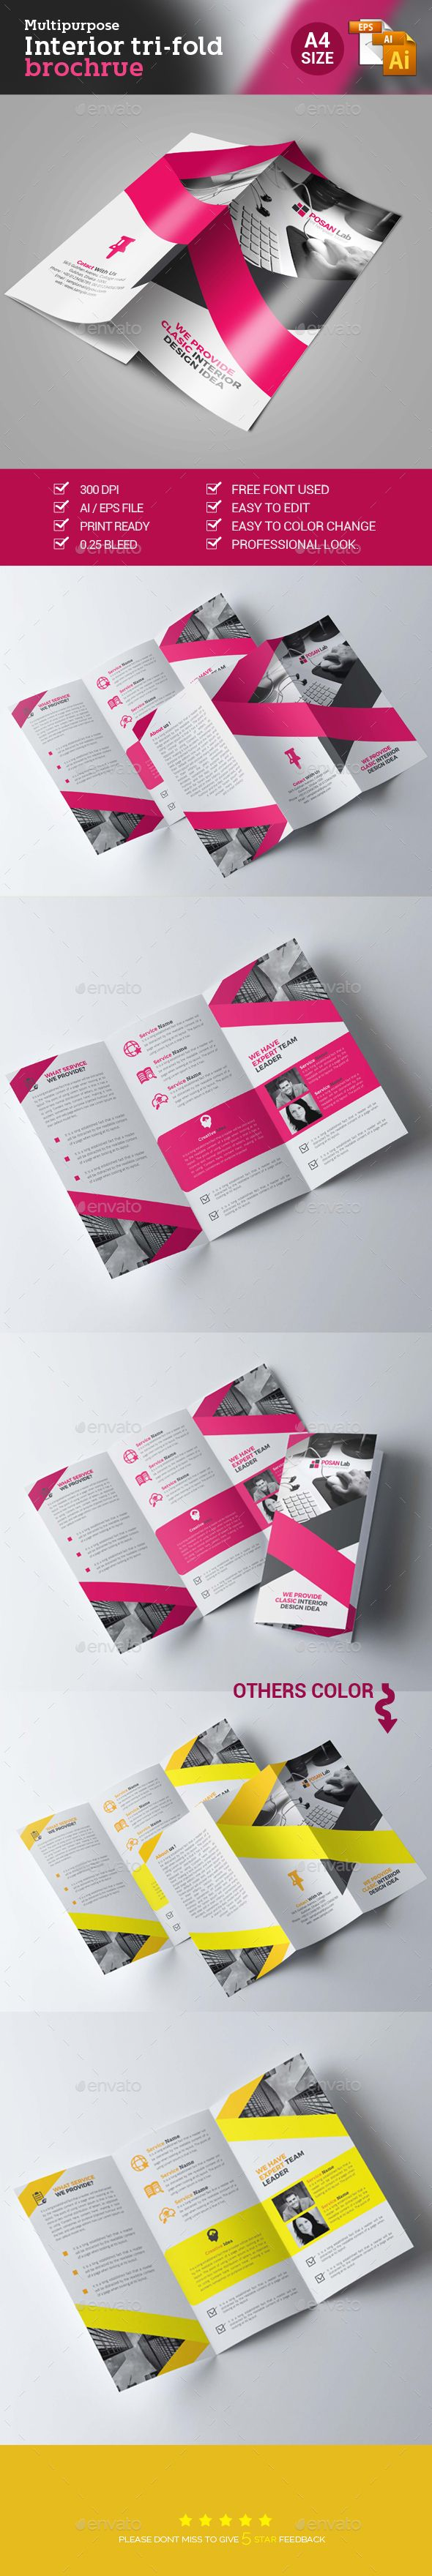 Corporate Business Trifold Brochure Template Vector EPS, AI #design Download: http://graphicriver.net/item/corporate-business-trifold-brochure/14139832?ref=ksioks